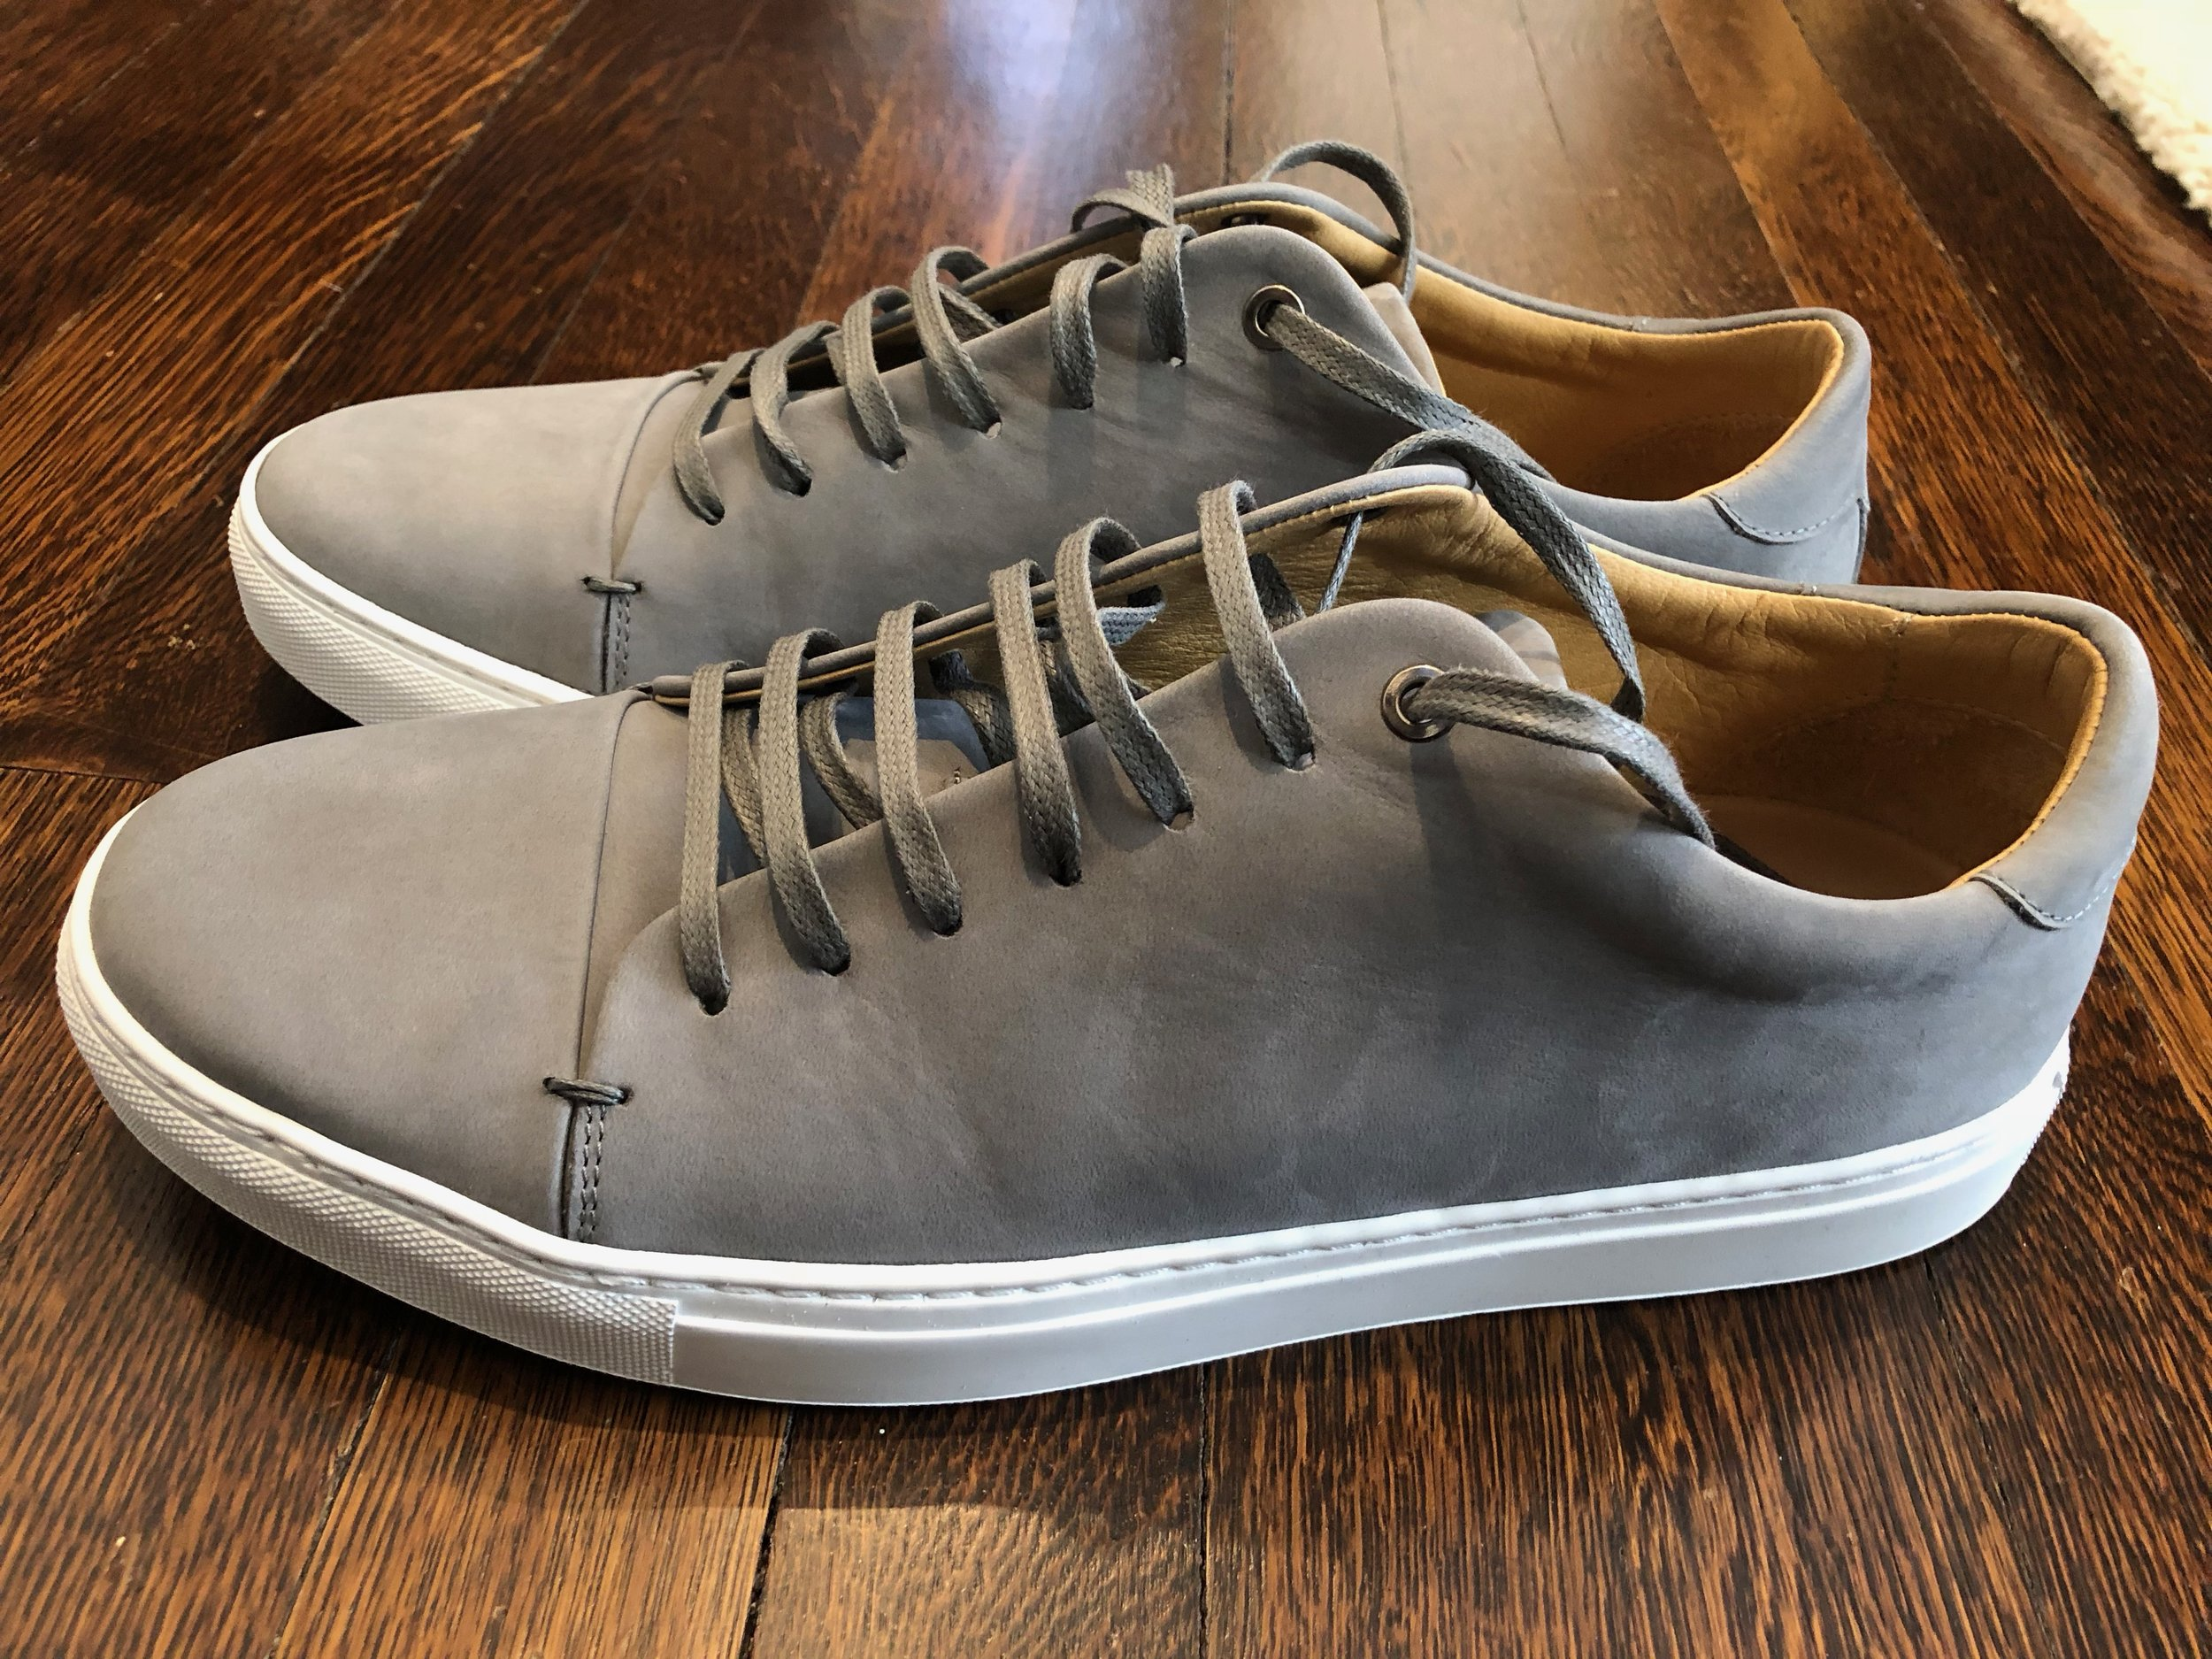 SuitSupply Sneakers and Dress Shoes In